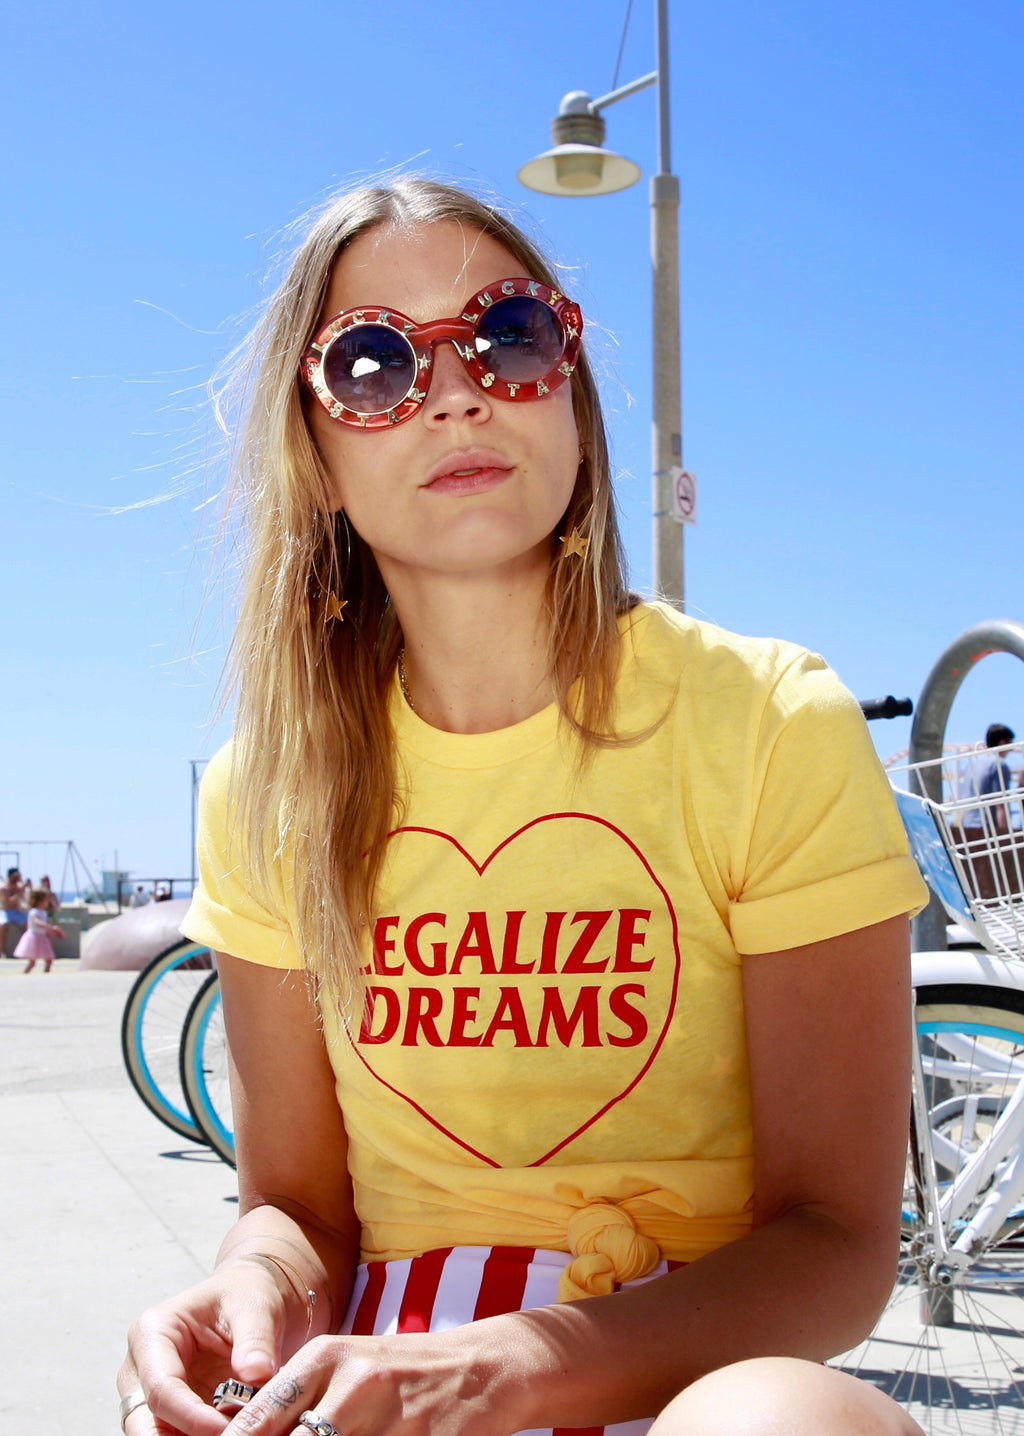 Girl wearing yellow shirt with red writing that reads Legalize Dreams with a red heart outline